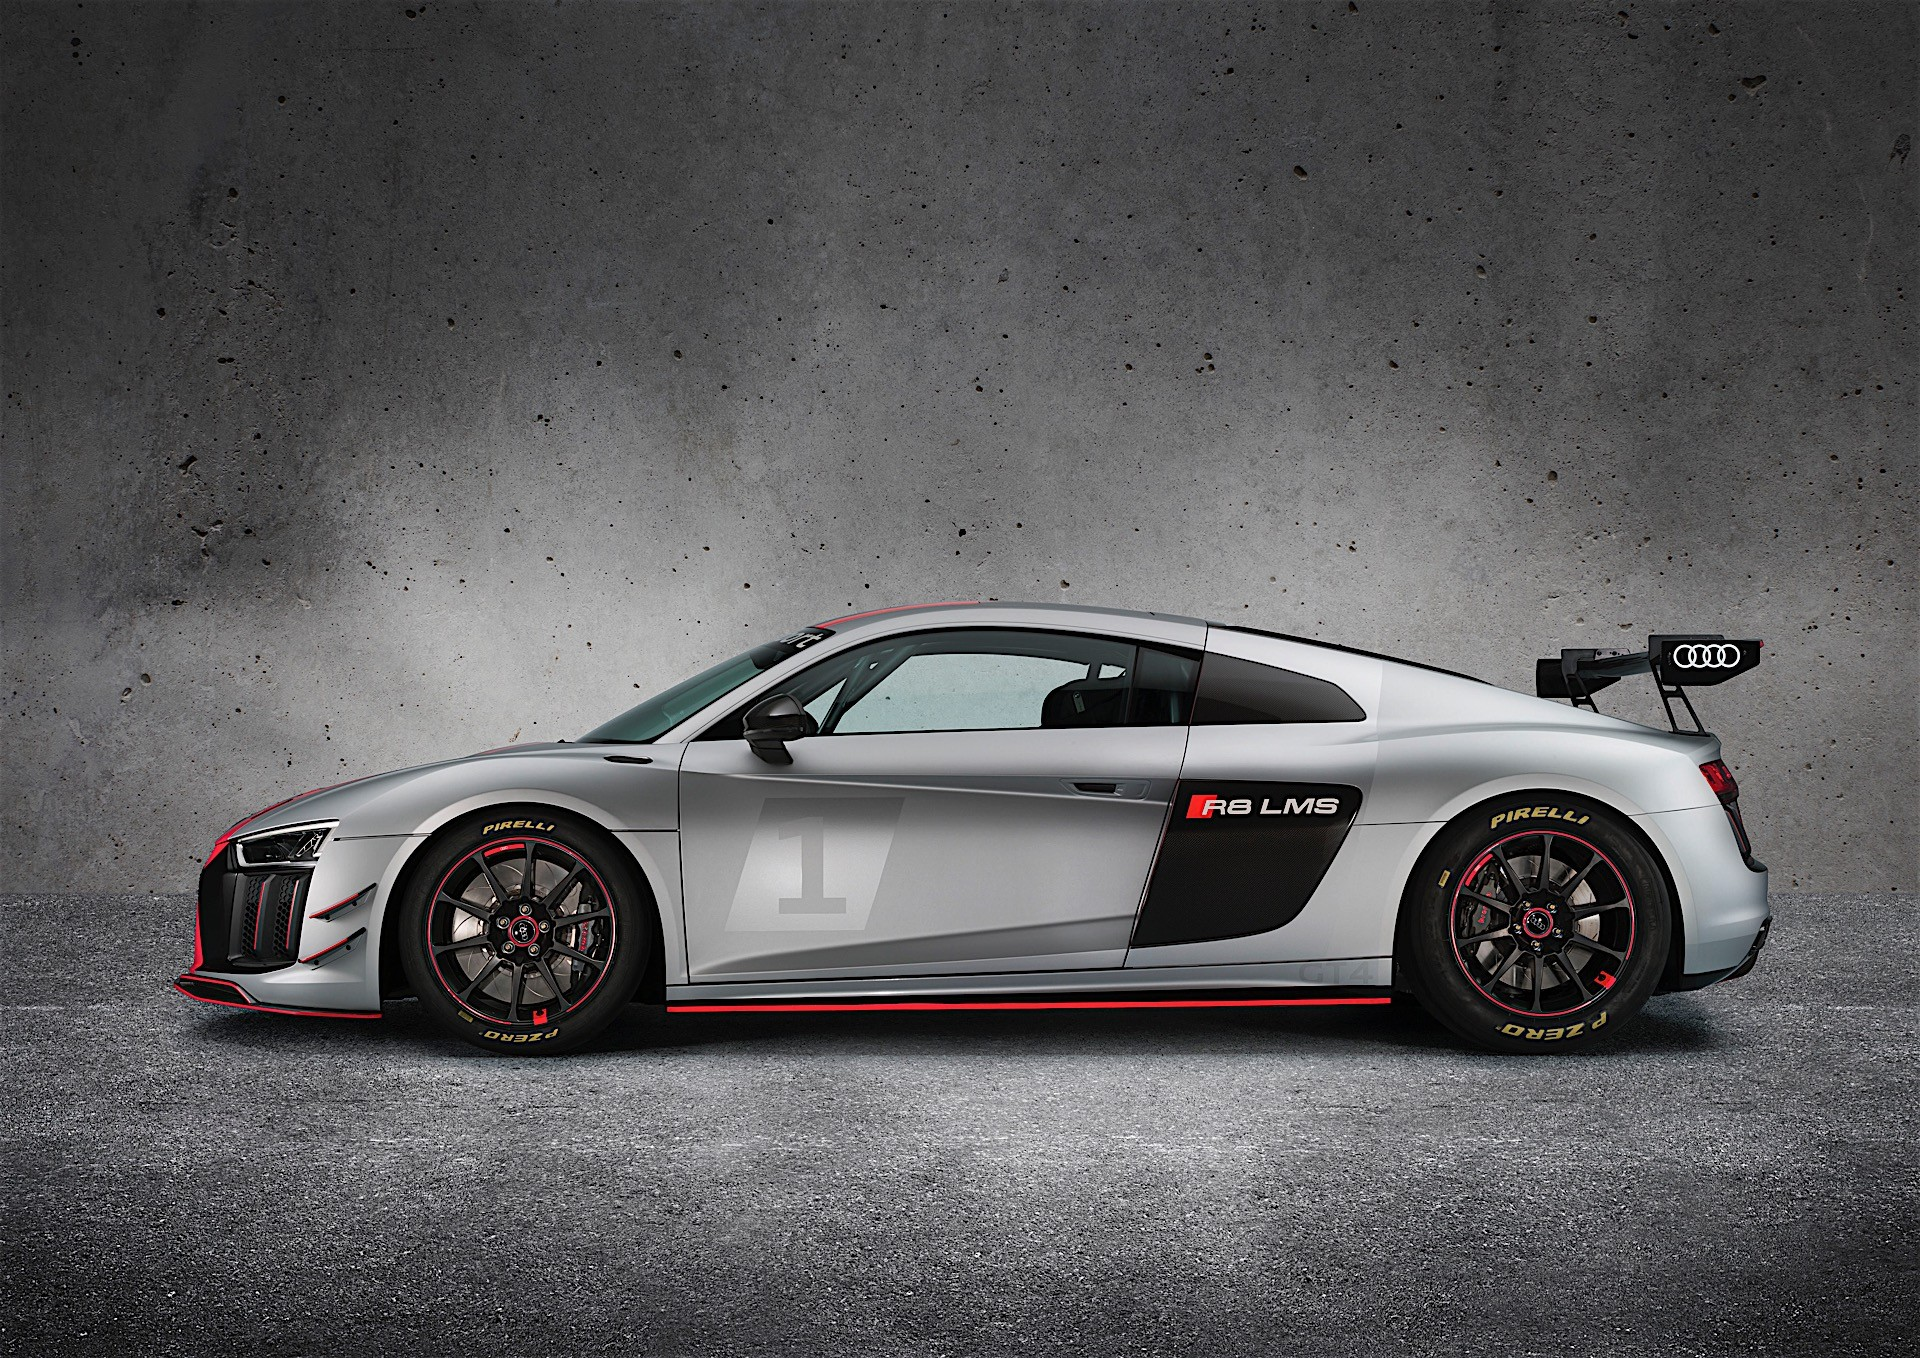 2017 audi r8 gt4 unveiled it 39 s the race version that 39 s closest to the road car autoevolution. Black Bedroom Furniture Sets. Home Design Ideas